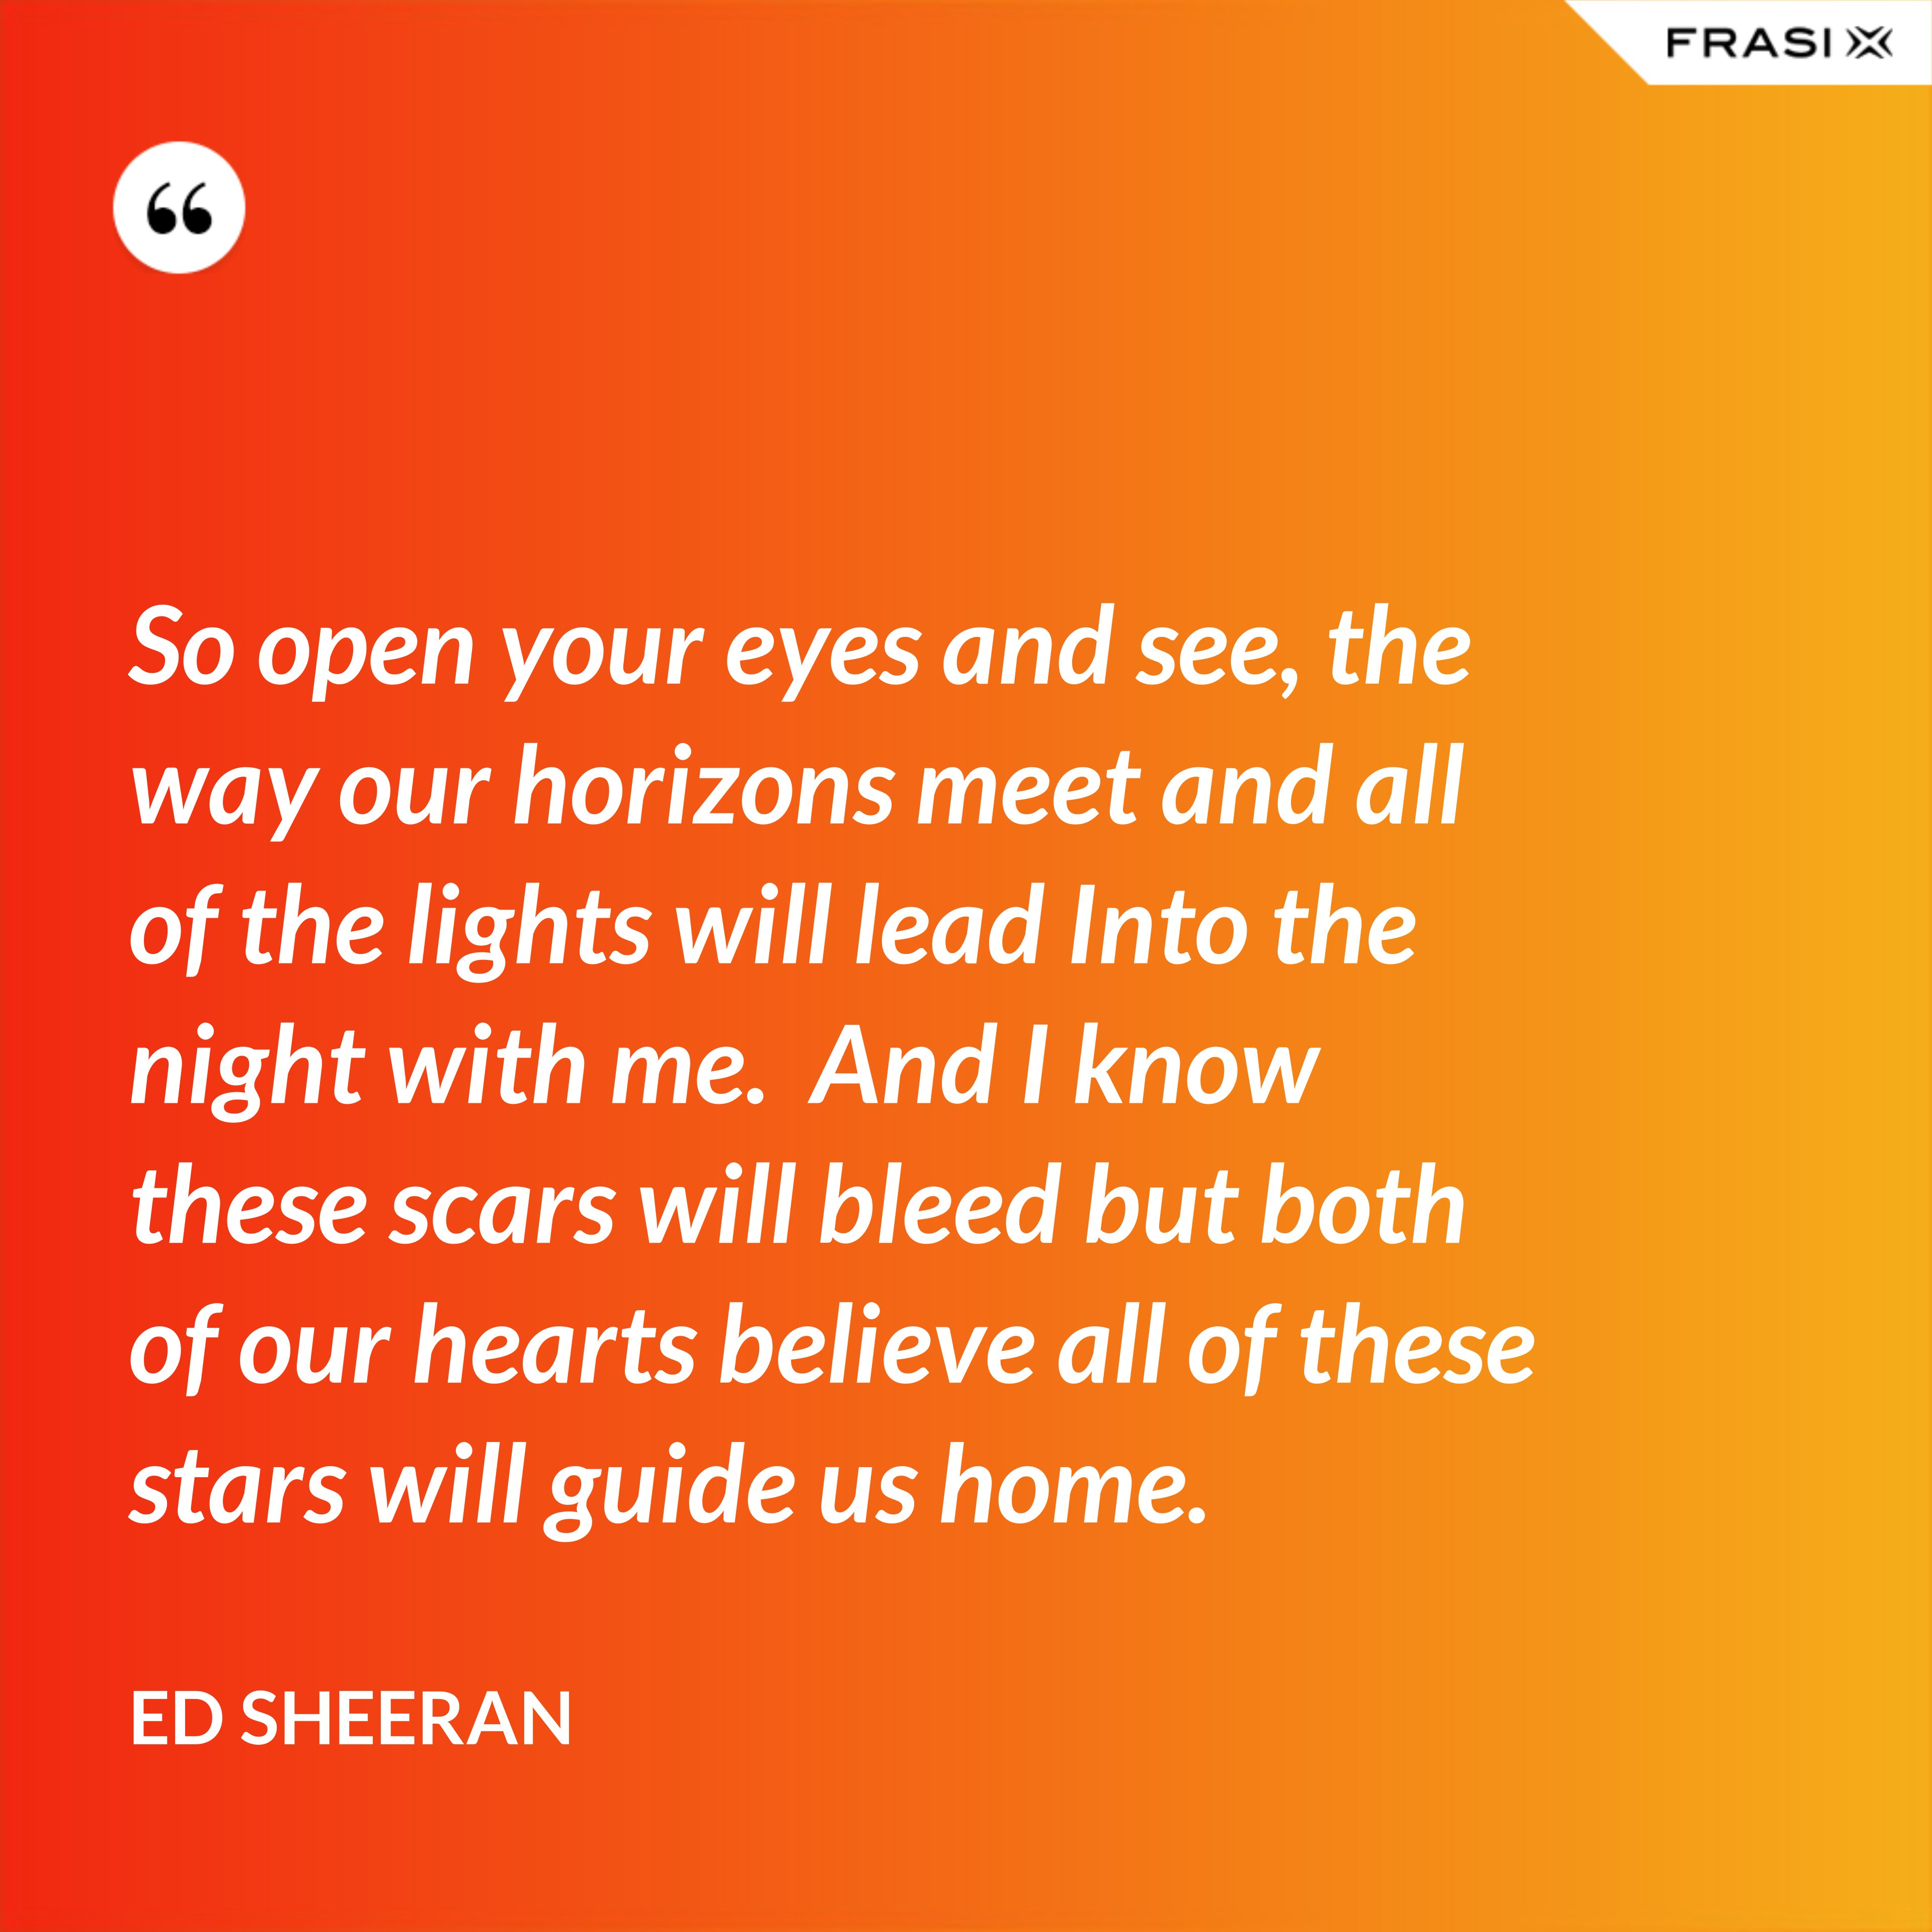 So open your eyes and see, the way our horizons meet and all of the lights will lead Into the night with me.  And I know these scars will bleed but both of our hearts believe all of these stars will guide us home. - Ed Sheeran